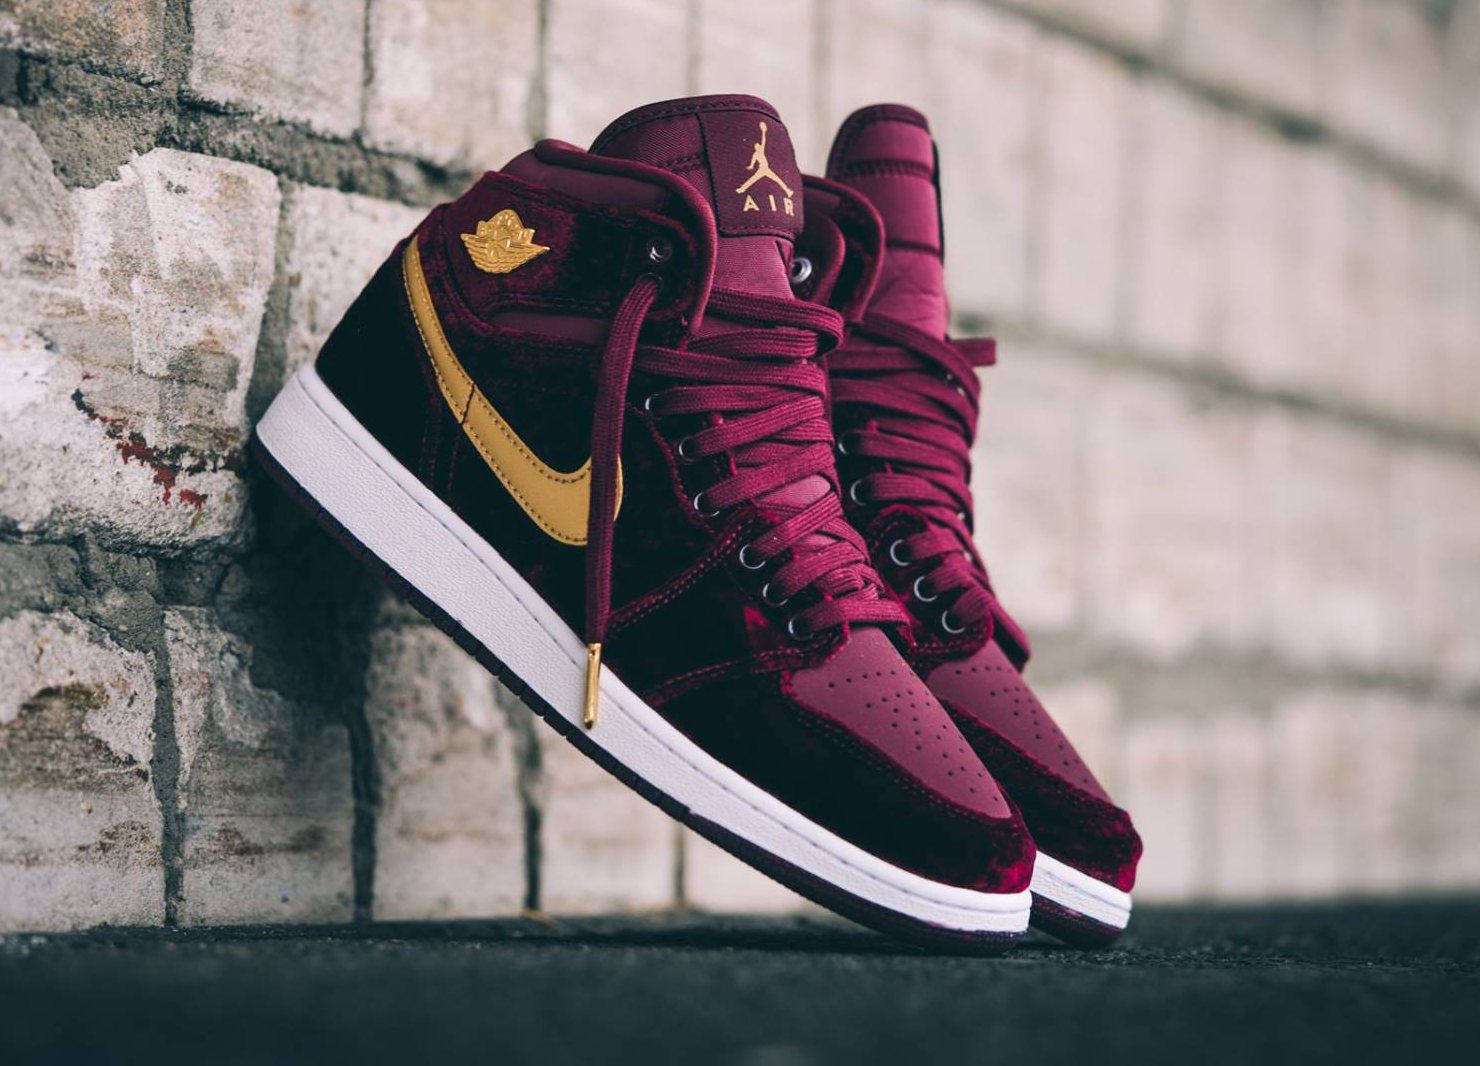 chaussure-air-jordan-1-retro-high-premium-velours-bordeaux-et-swoosh-dore-2